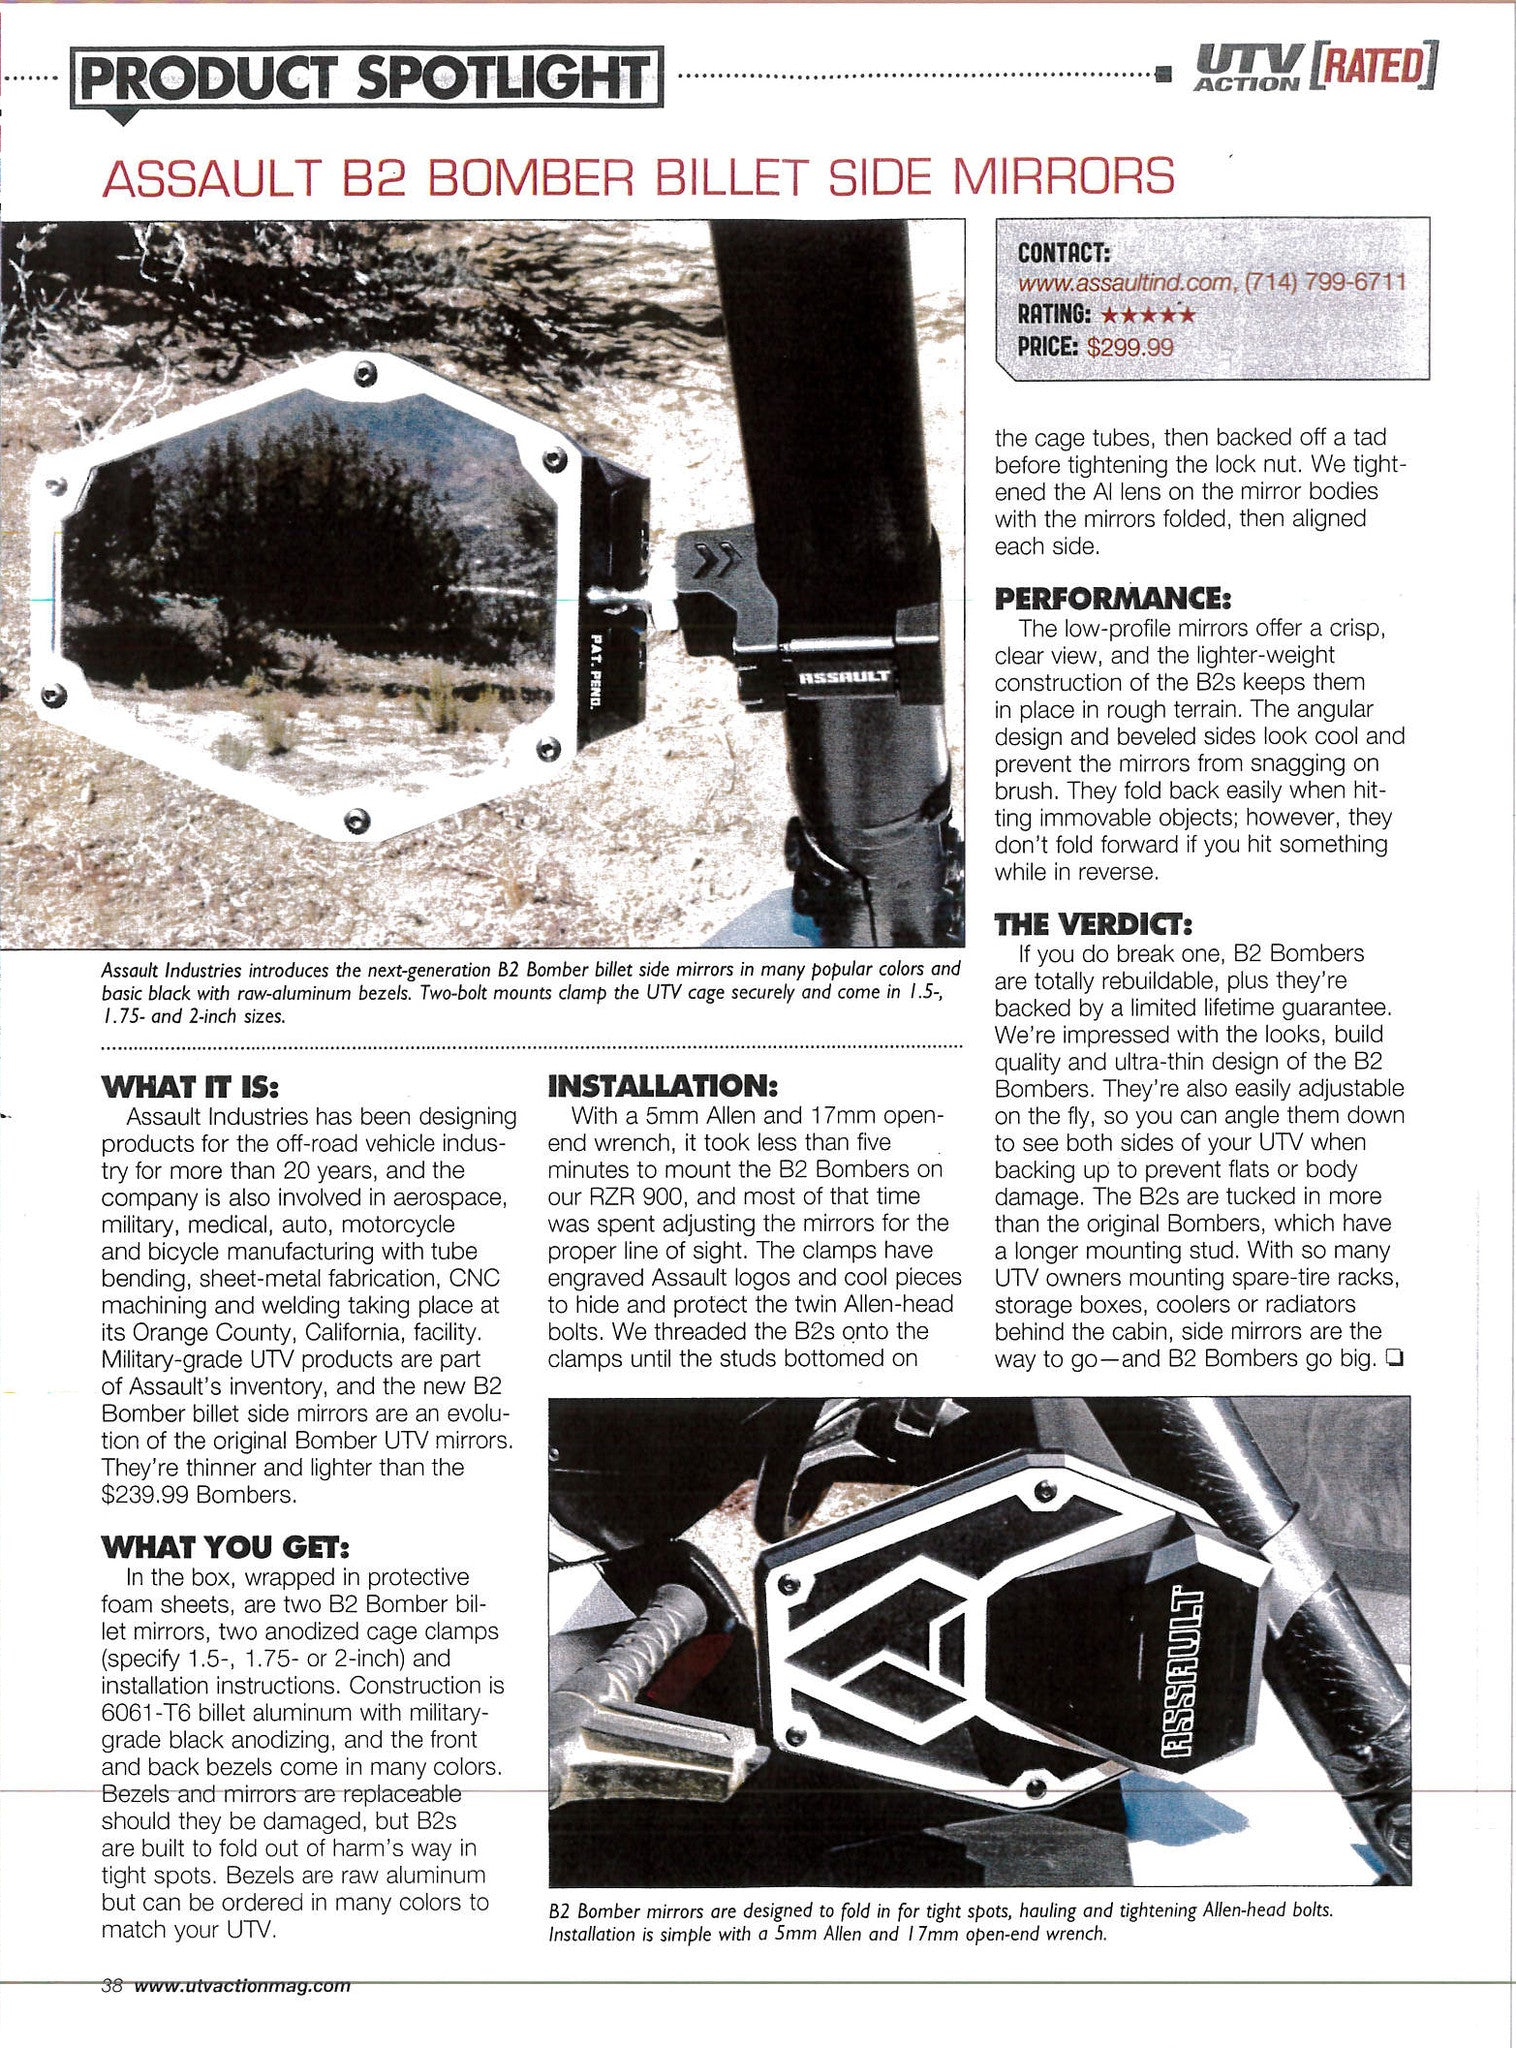 Assault Industries scores a 5 Star Review from UTV Action Magazine!